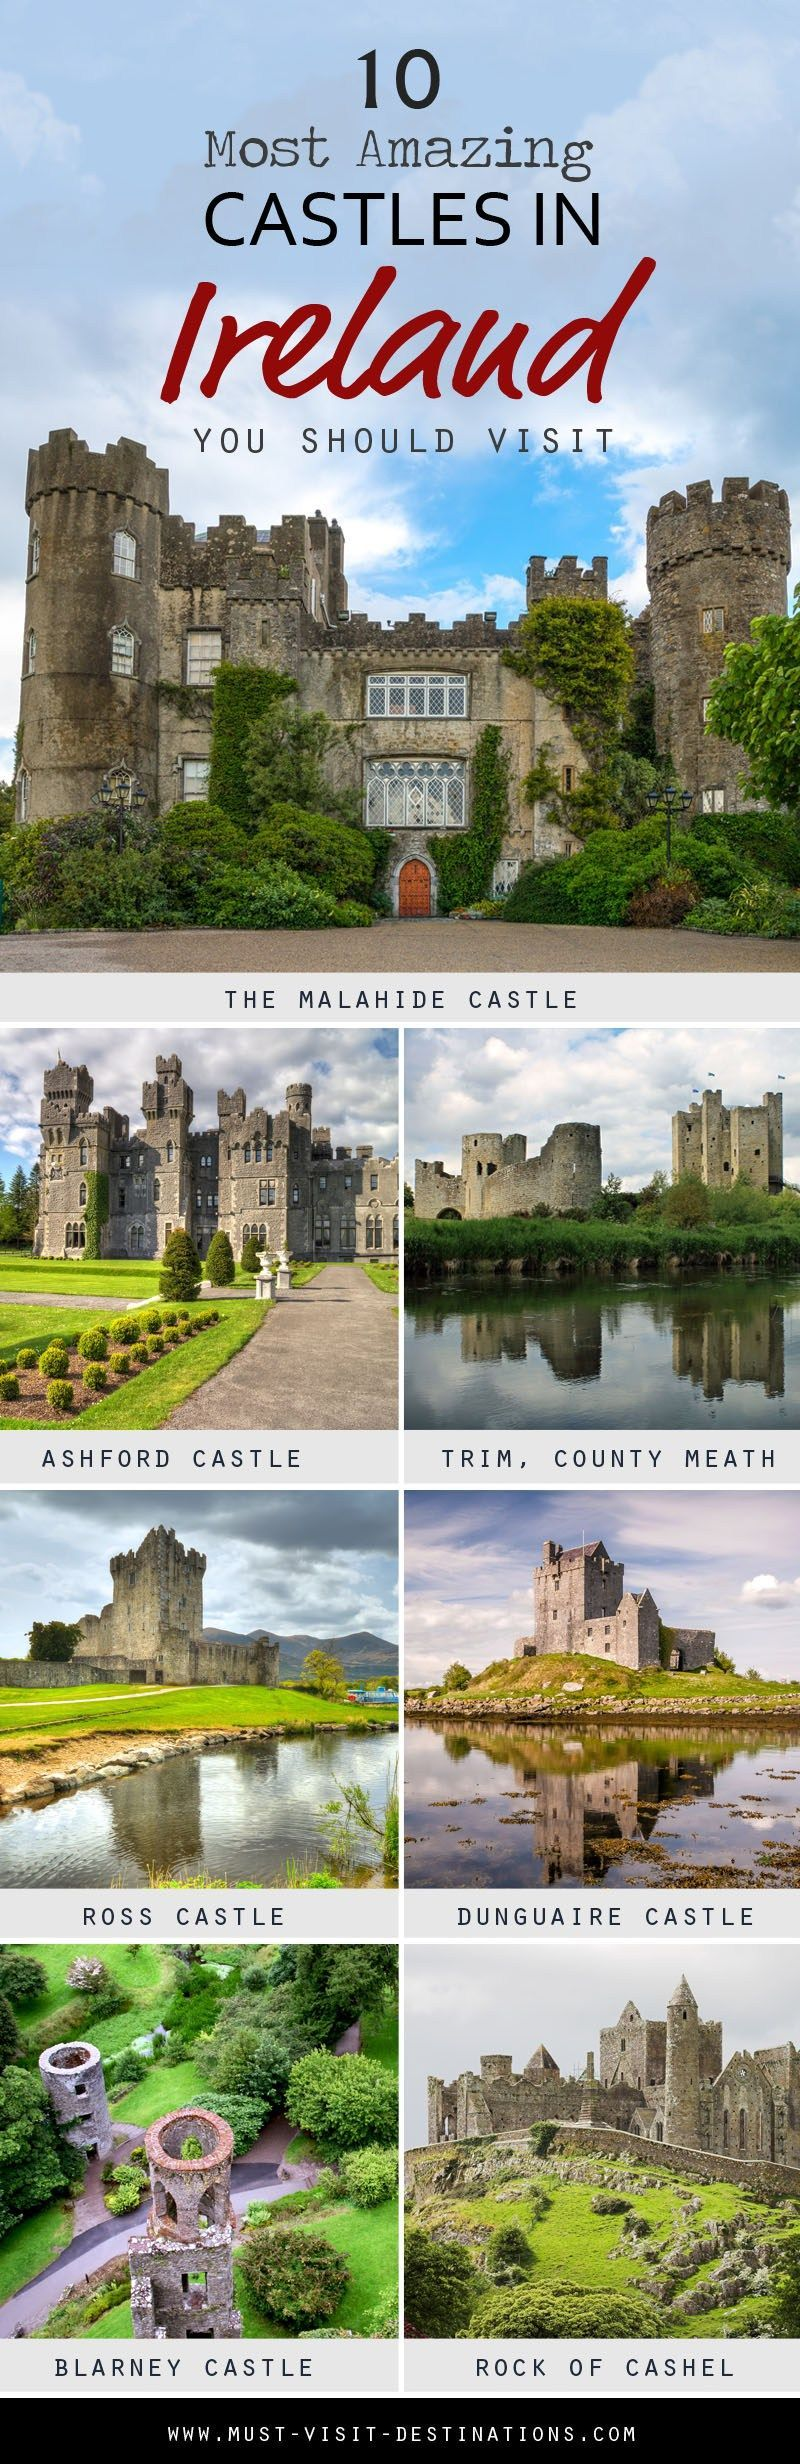 Ireland is home to some of the most beautiful medieval castles in the world. Discover 10 Most Amazing Castles in Ireland You Should Visit!